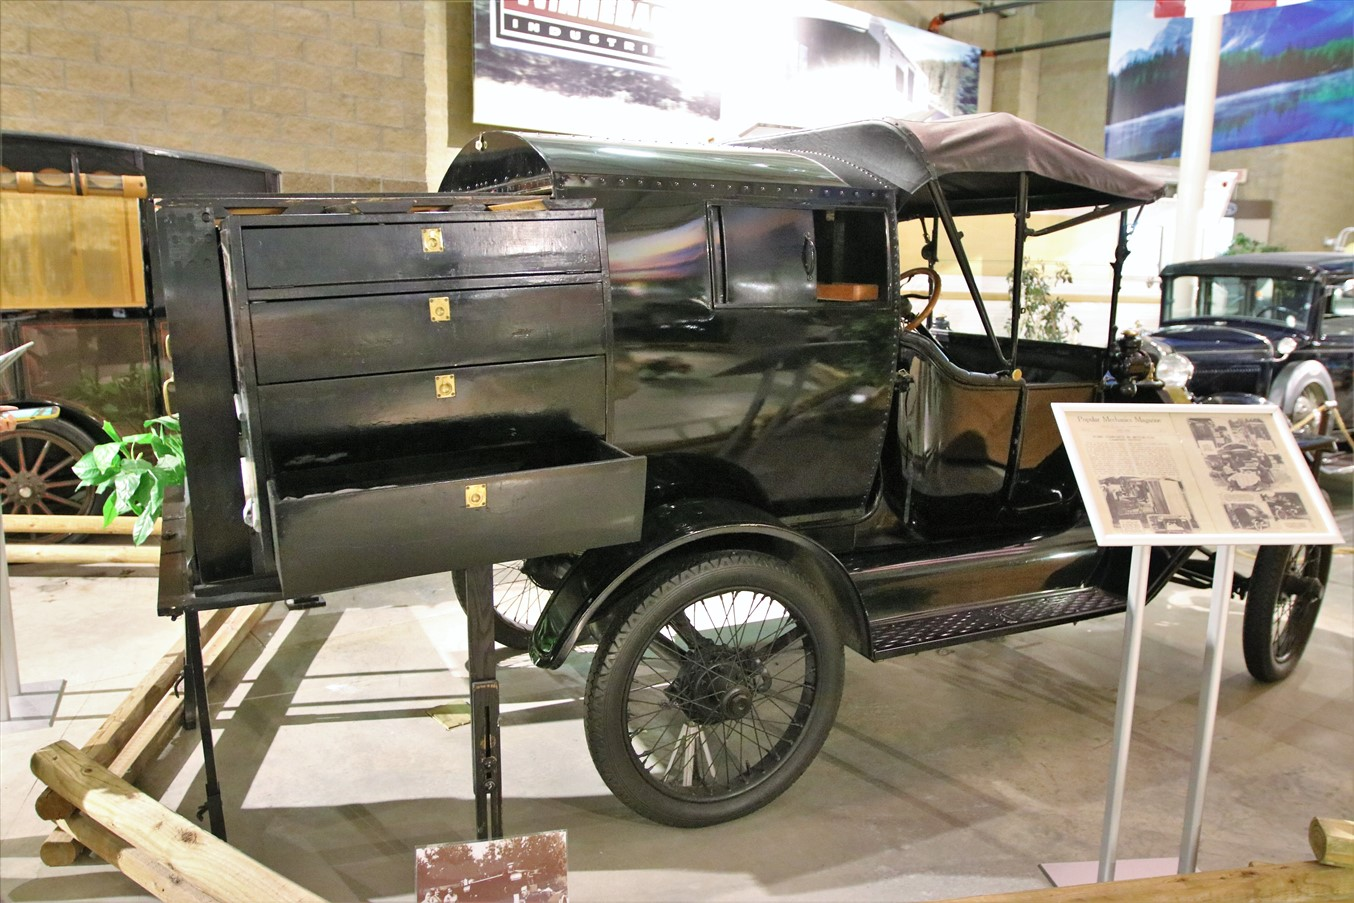 2018 07 16 133 Elkhart IN RV Museum.jpg